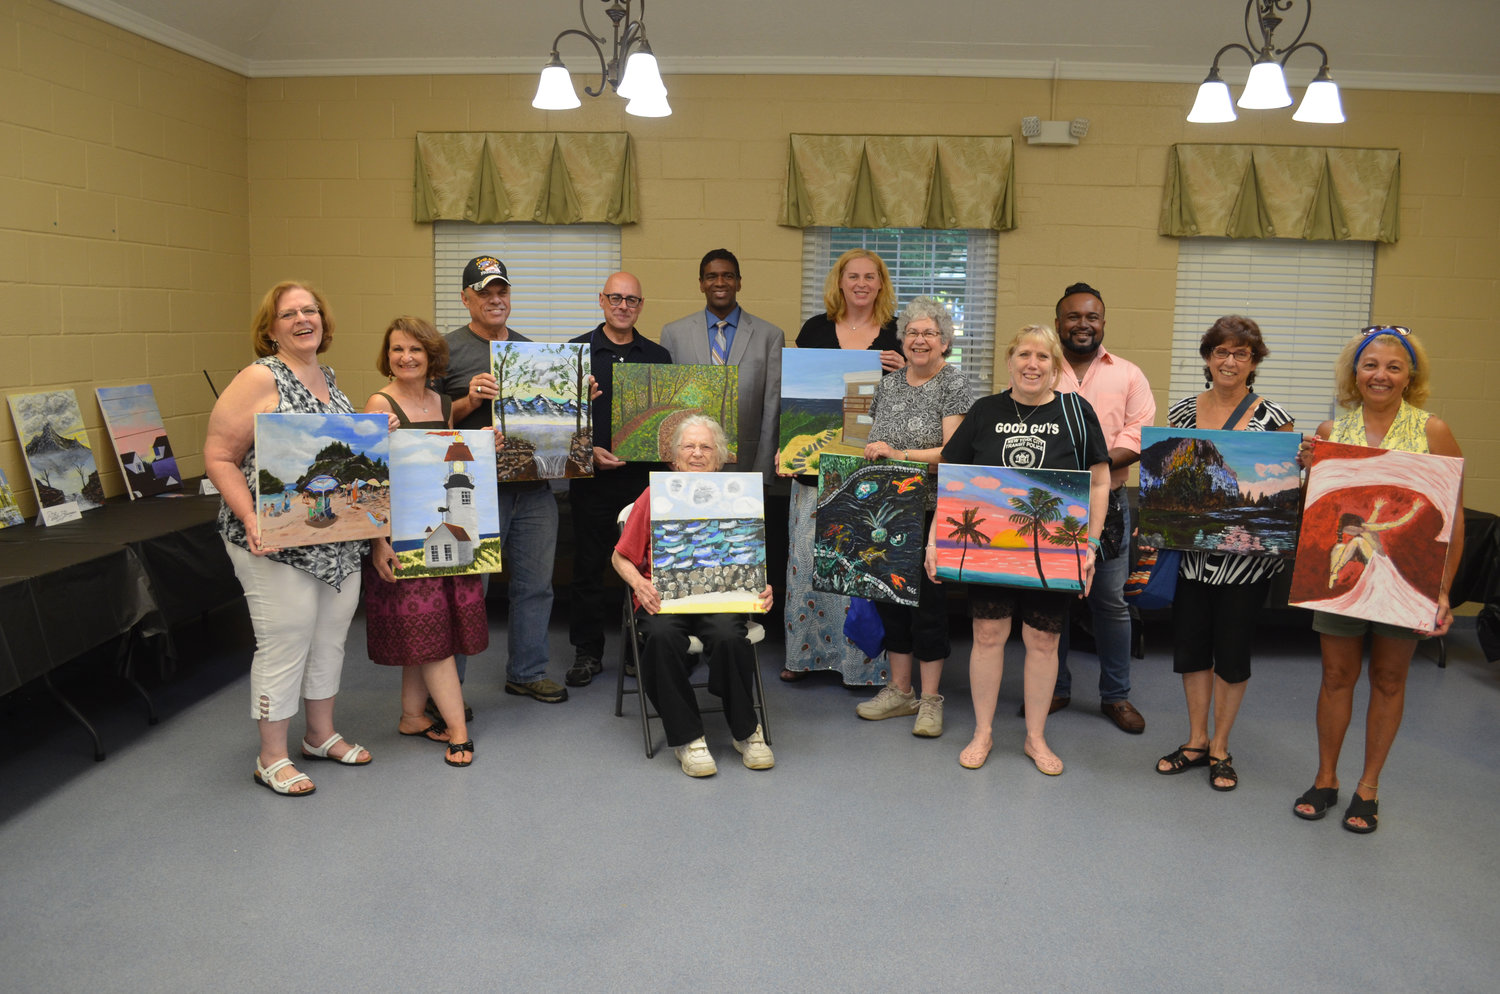 Students of the village Recreation Department's acrylic painting class showed off their finished works. The 10-week course demonstrated to them the fundamentals of working with acrylic on canvas.